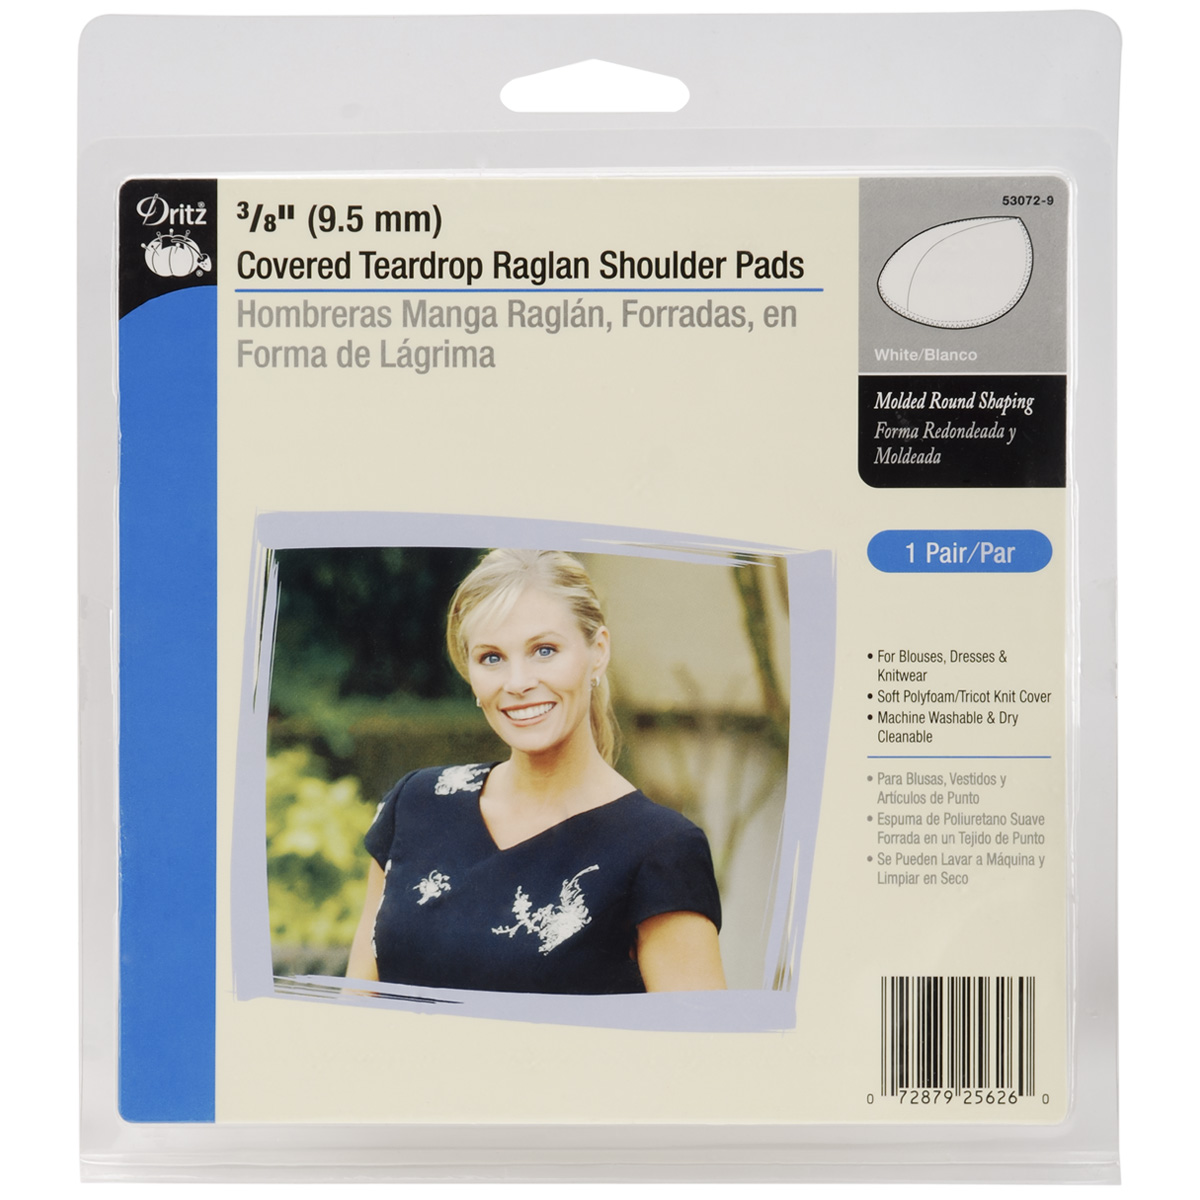 "Dritz 3/8"" Covered Teardrop Raglan Shoulder Pads 2/Pkg-White"